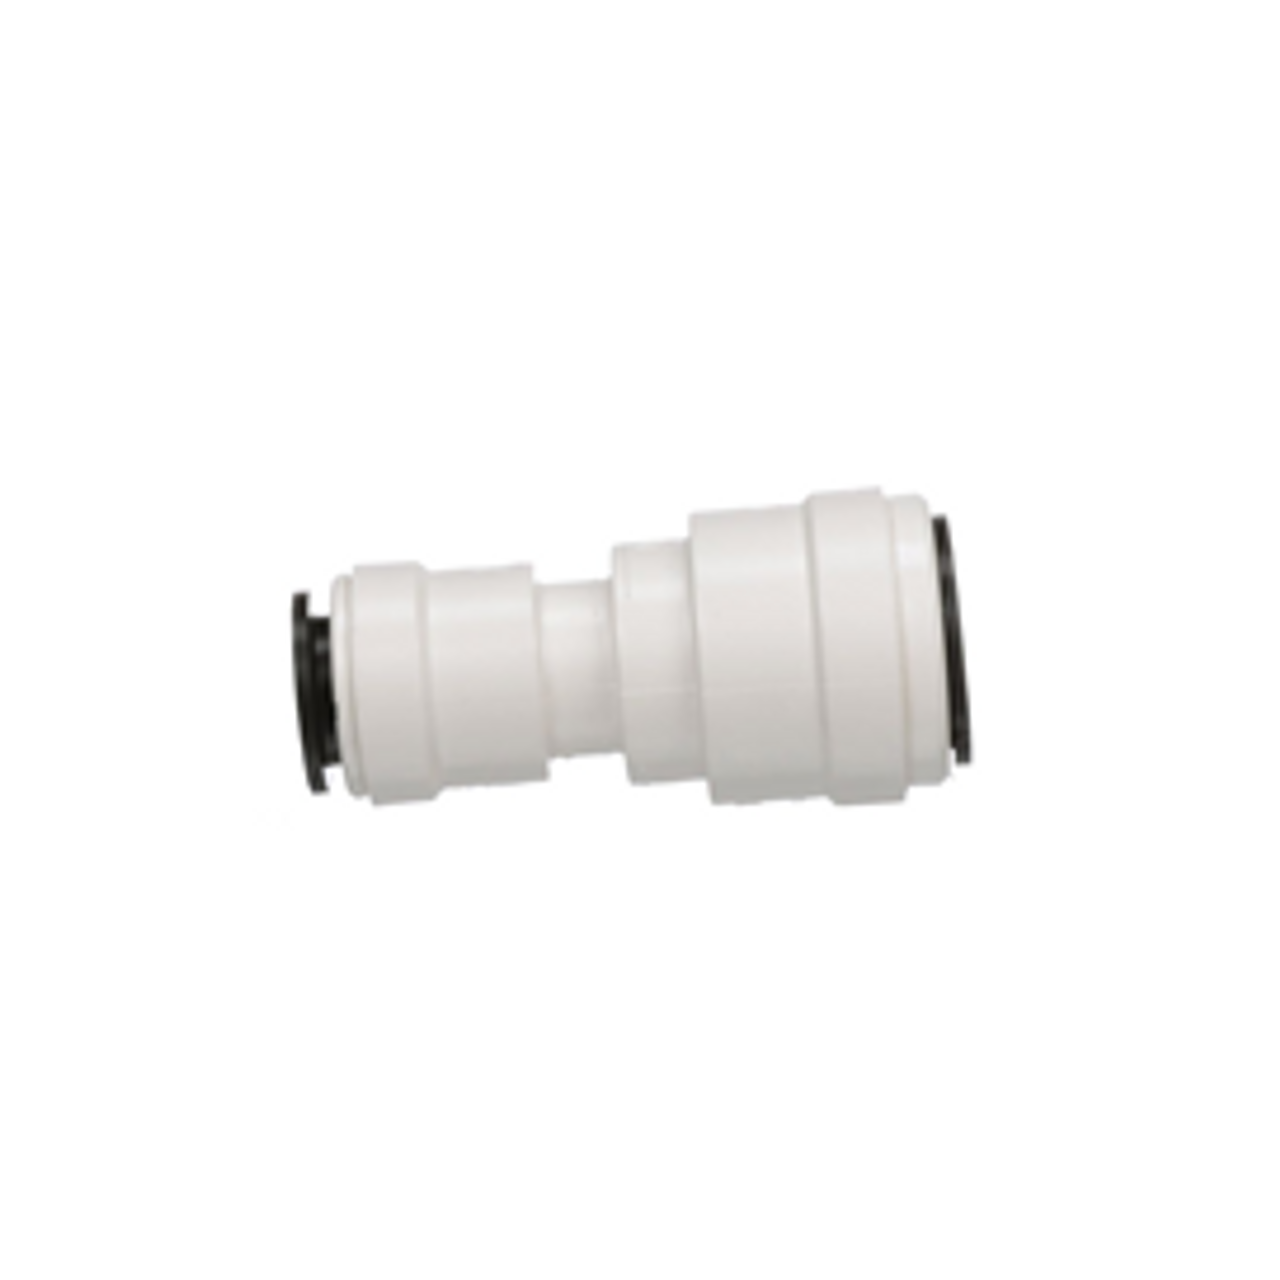 """¾"""" CTS x ½"""" CTS reducing union connector 3515R-1410"""